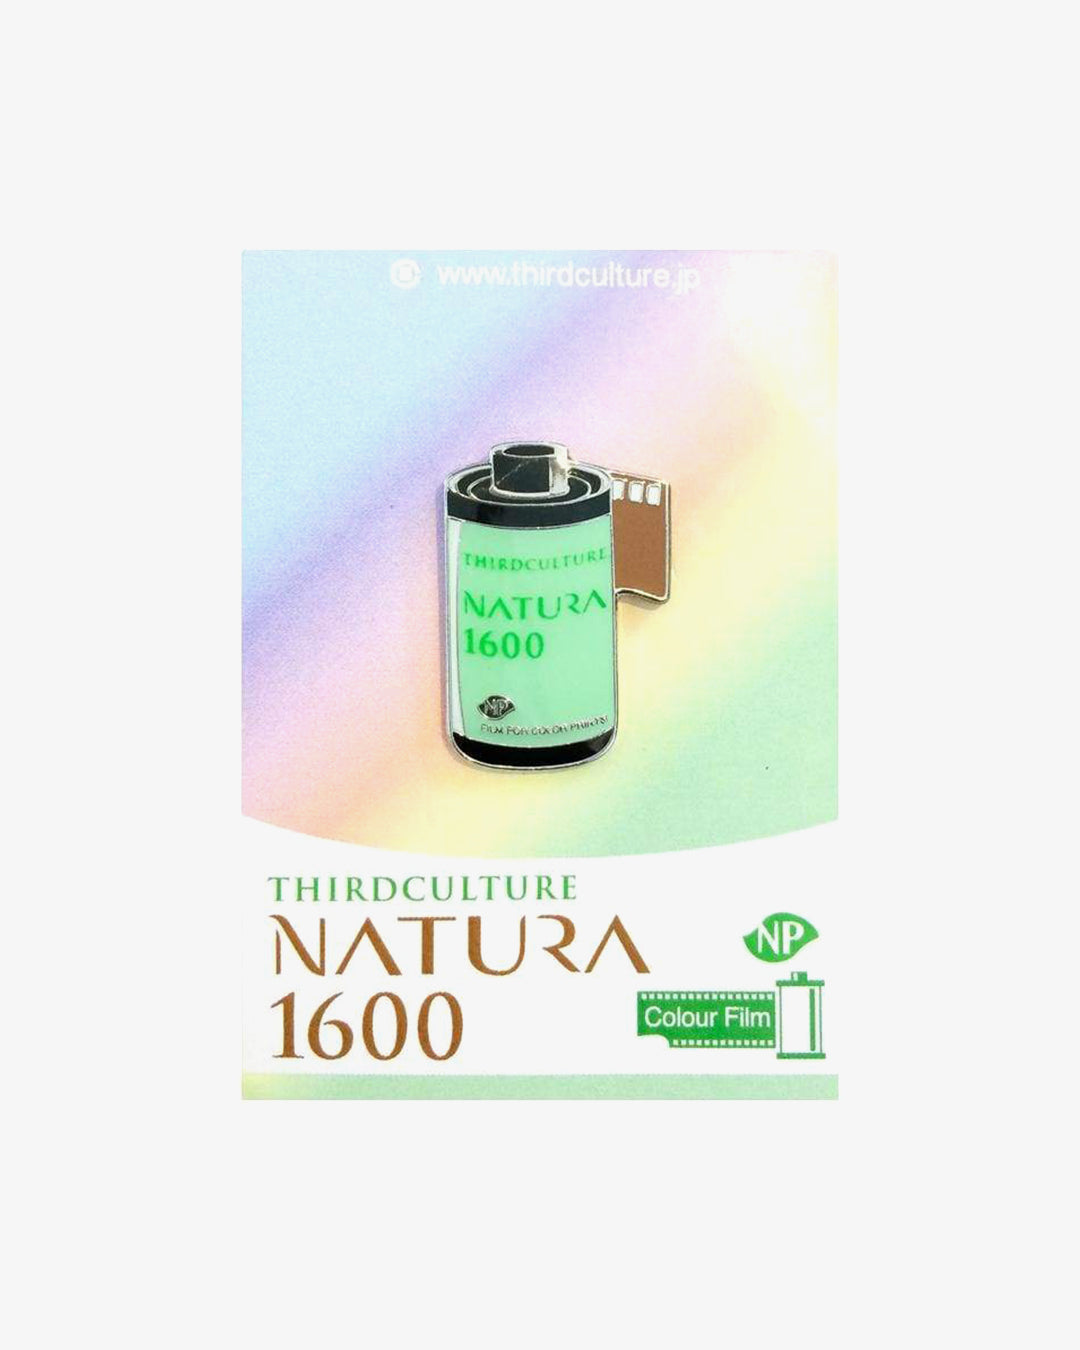 NATURA 1600 35mm Film Pin by Third Culture